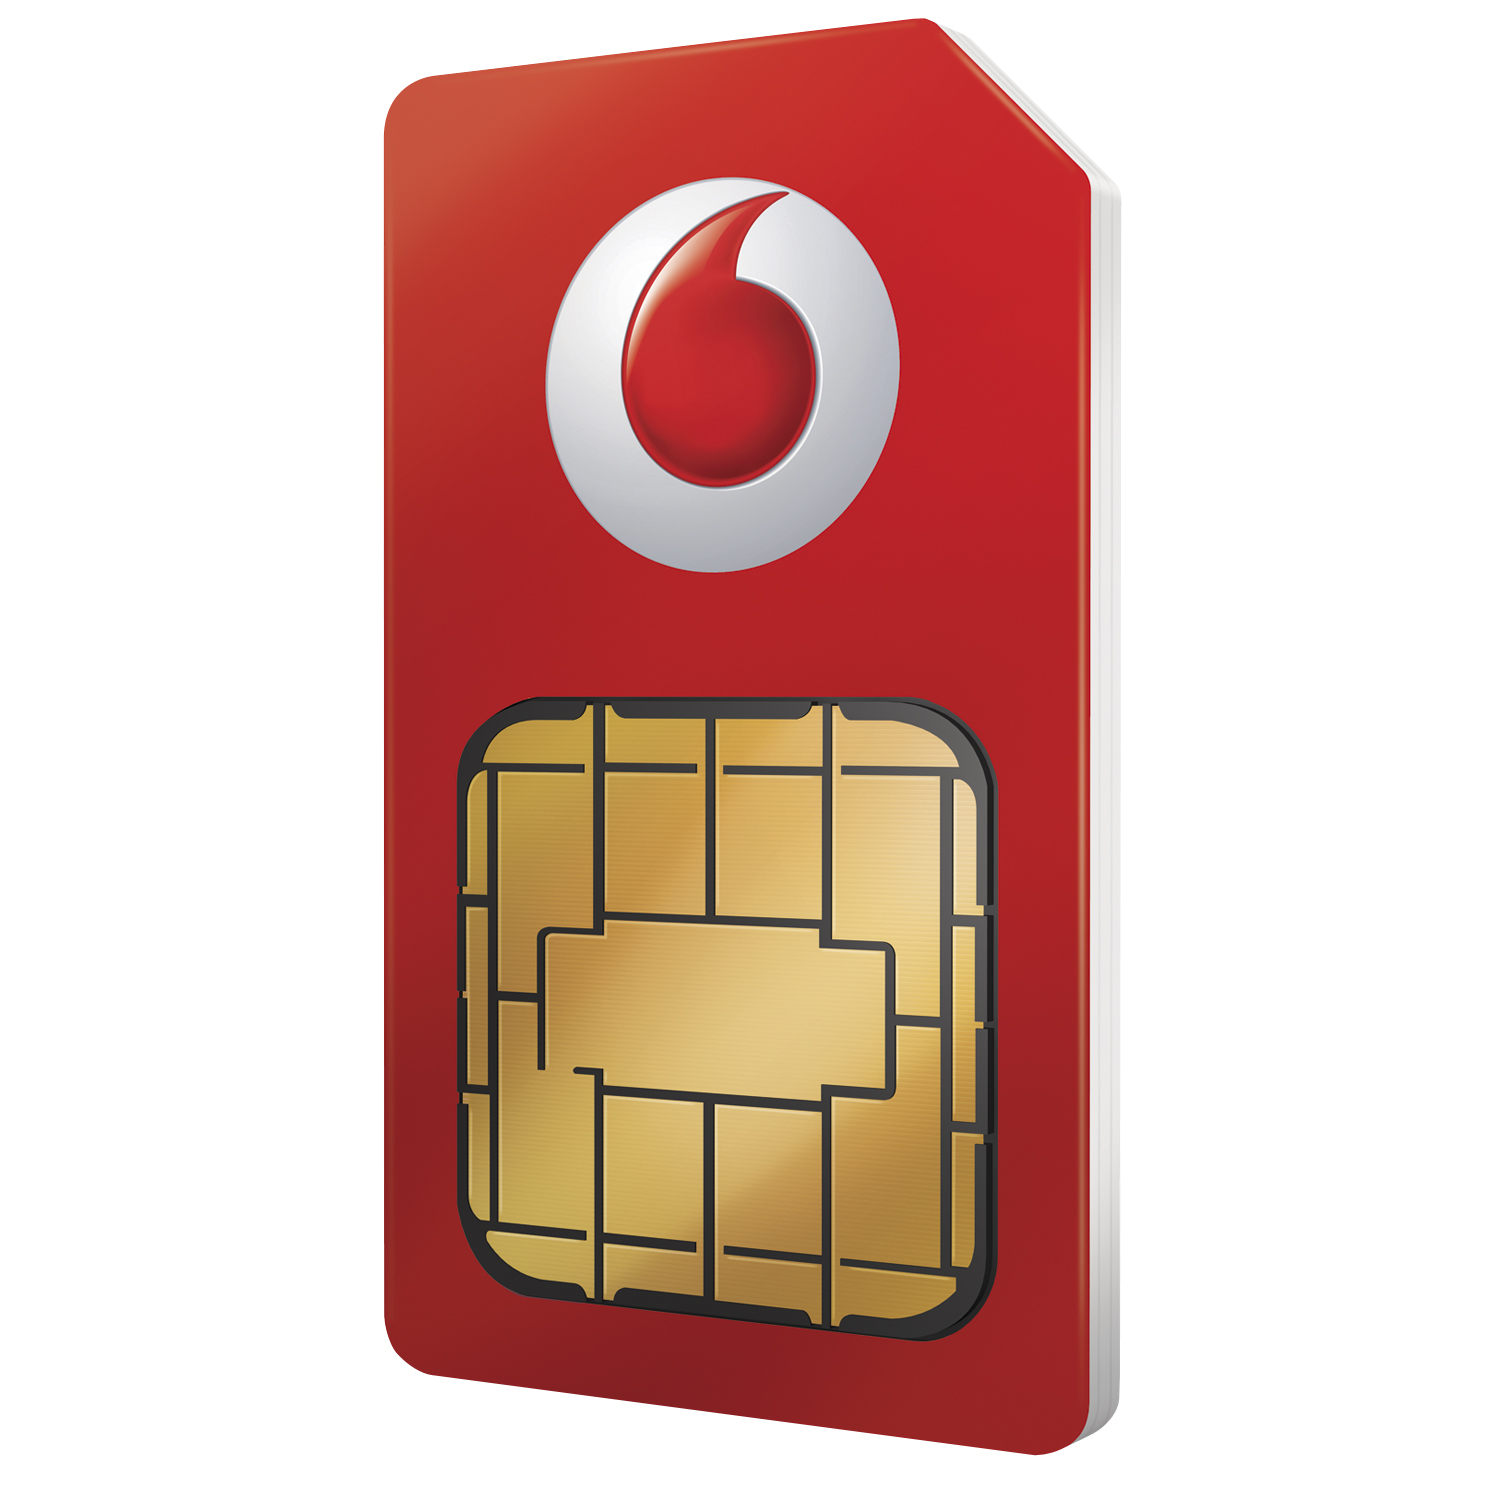 sim card smanos x300 coda home technology specialists stereological pipette stereologic ltd